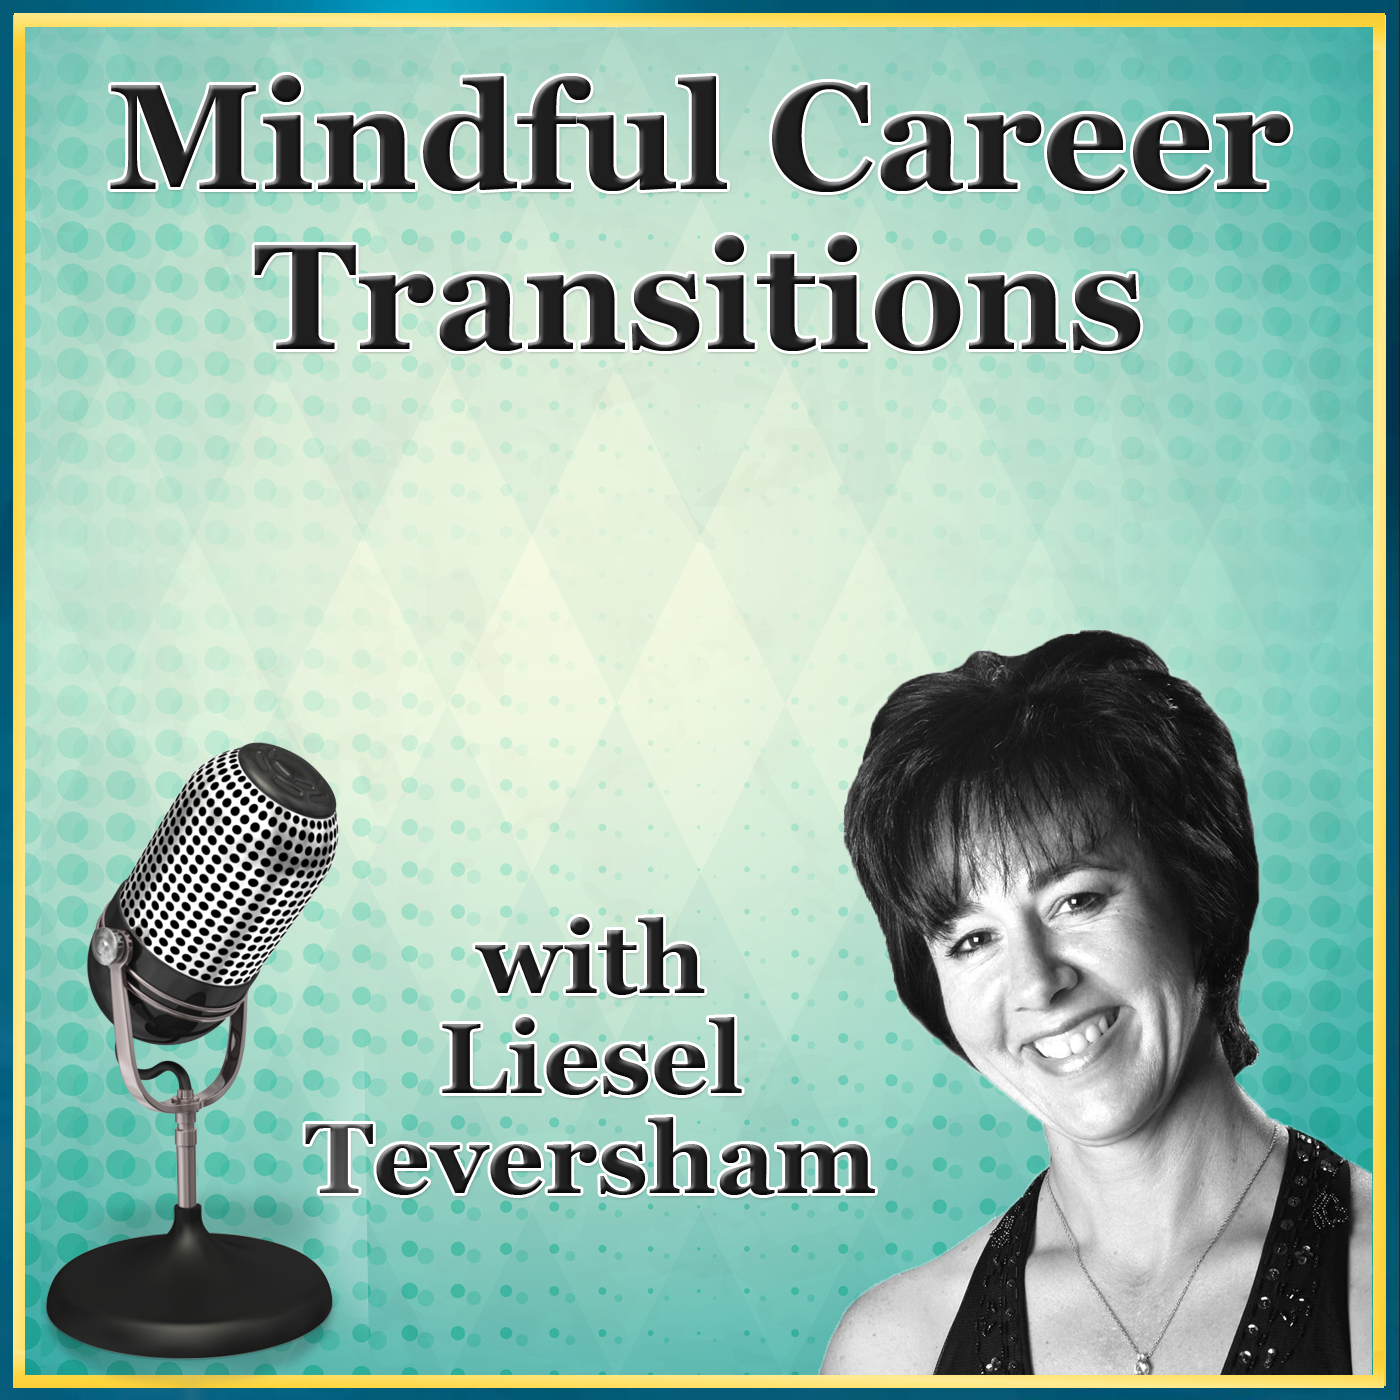 Mindful Career Transitions